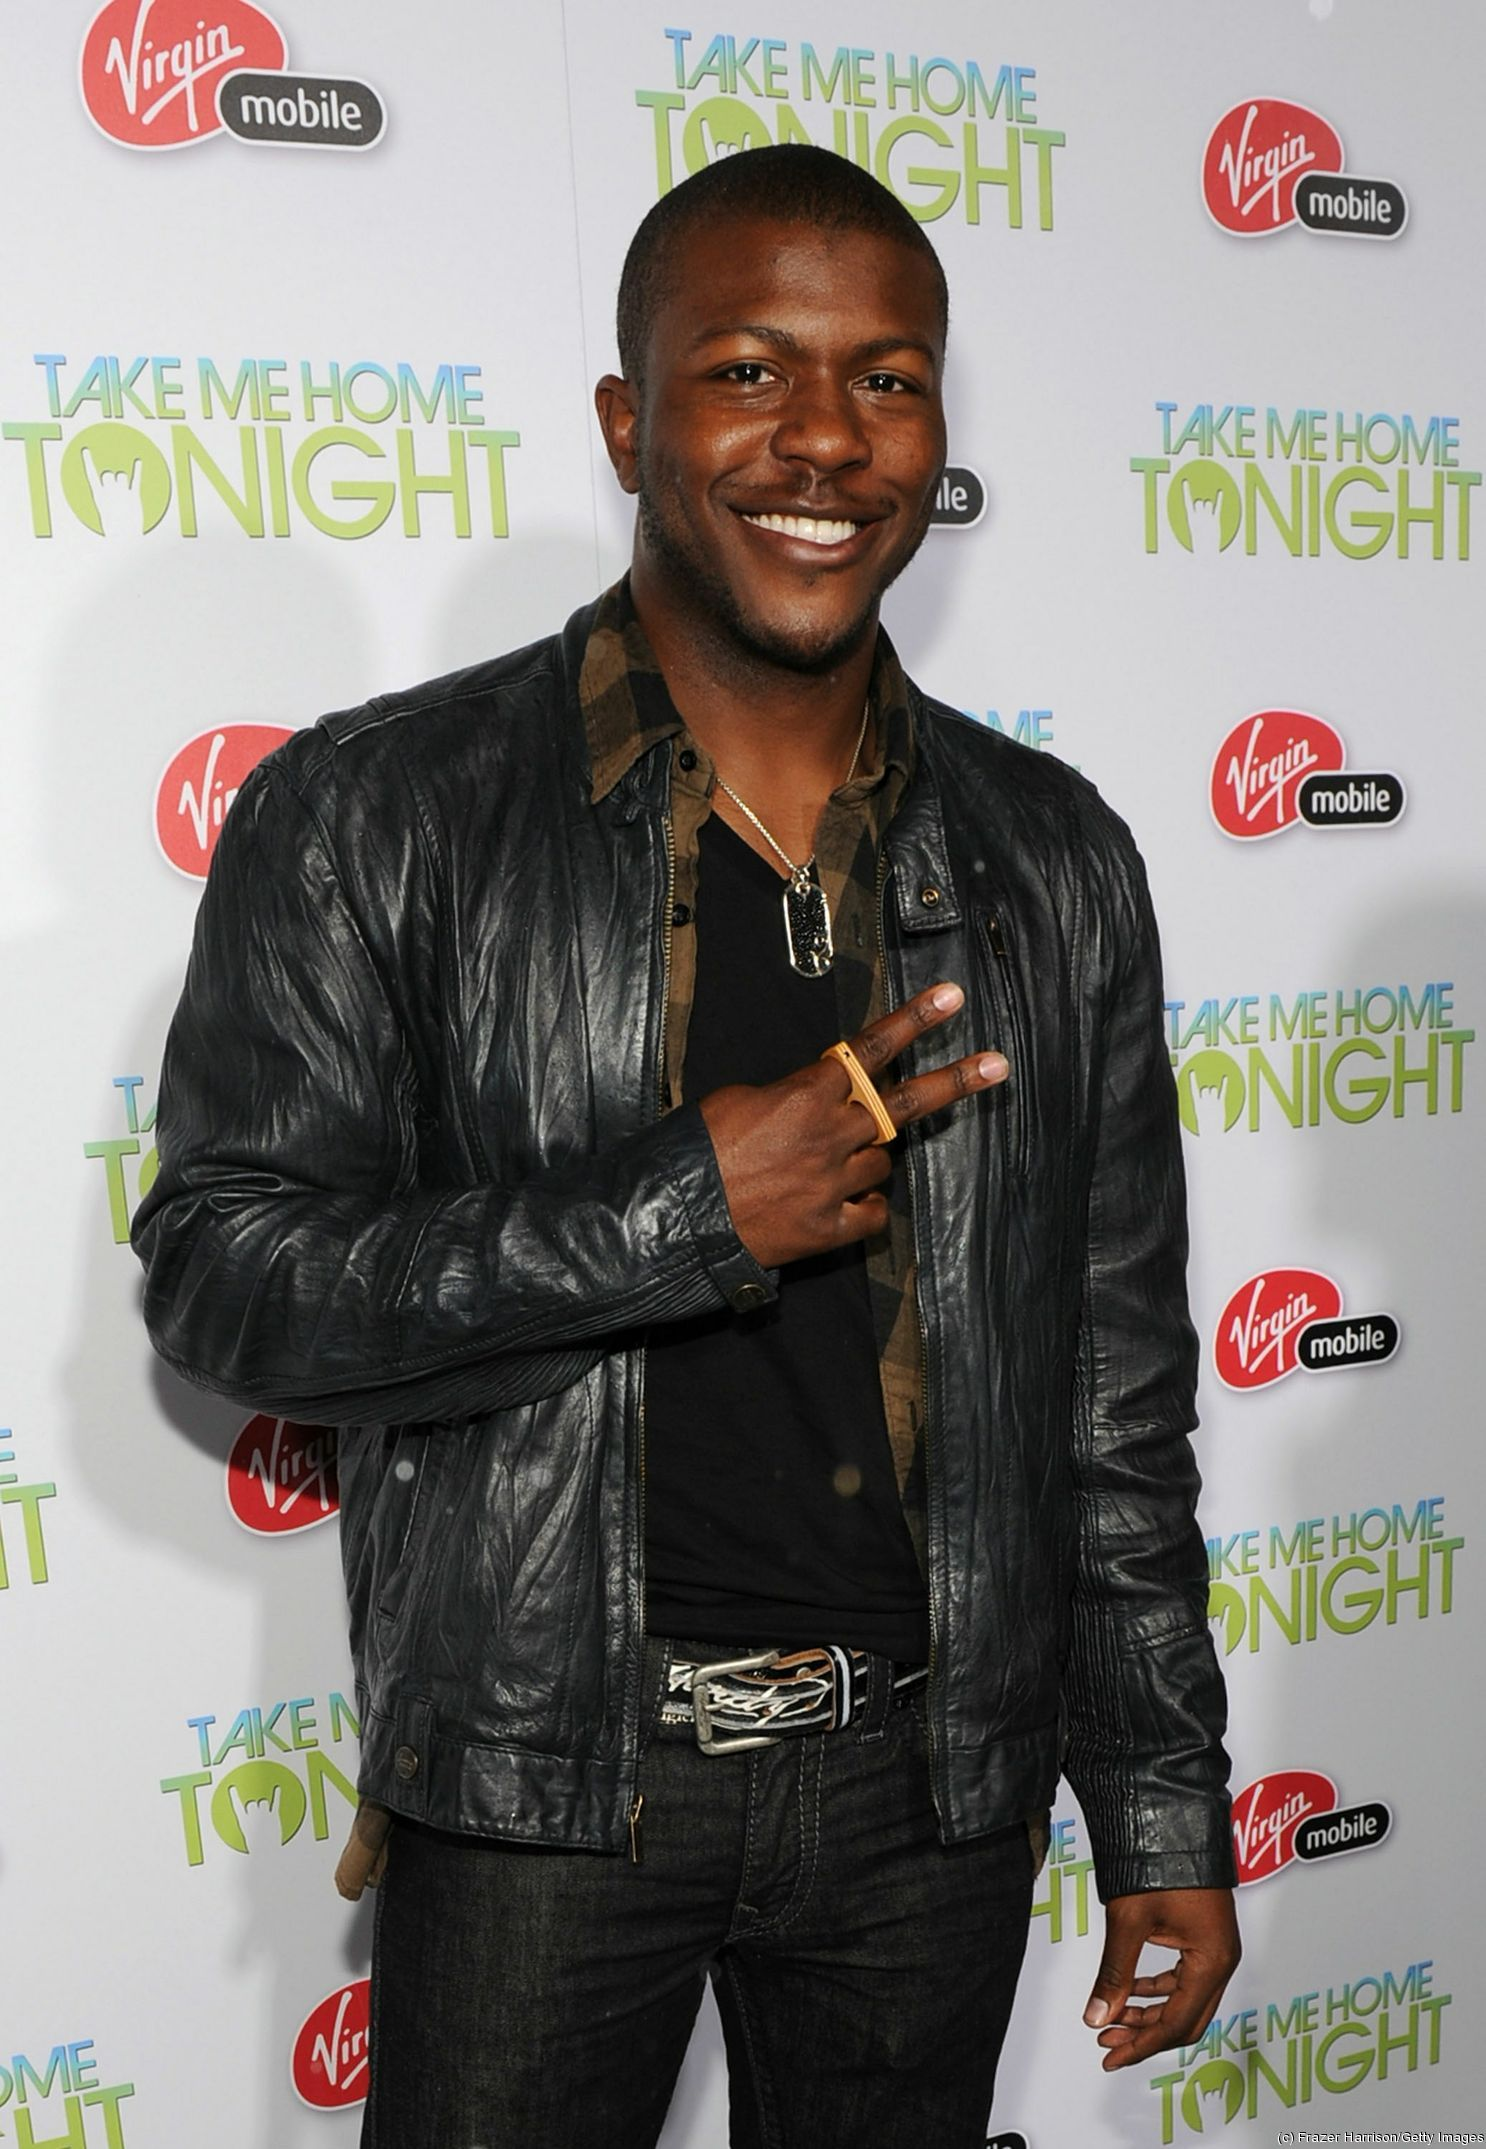 edwin hodge chicago fireedwin hodge purge, edwin hodge chicago fire, edwin hodge movies, edwin hodge actor, edwin hodge purge 3, edwin hodge purge 2, edwin hodge brother, edwin hodge leverage, edwin hodge one tree hill, edwin hodge the purge anarchy, edwin hodge sleepy hollow, edwin hodge instagram, edwin hodge images, edwin hodge wiki, edwin hodge tv shows, edwin hodge twitter, edwin hodge morgan stanley, edwin hodge married, edwin hodge harper's bazaar, edwin hodge university of victoria